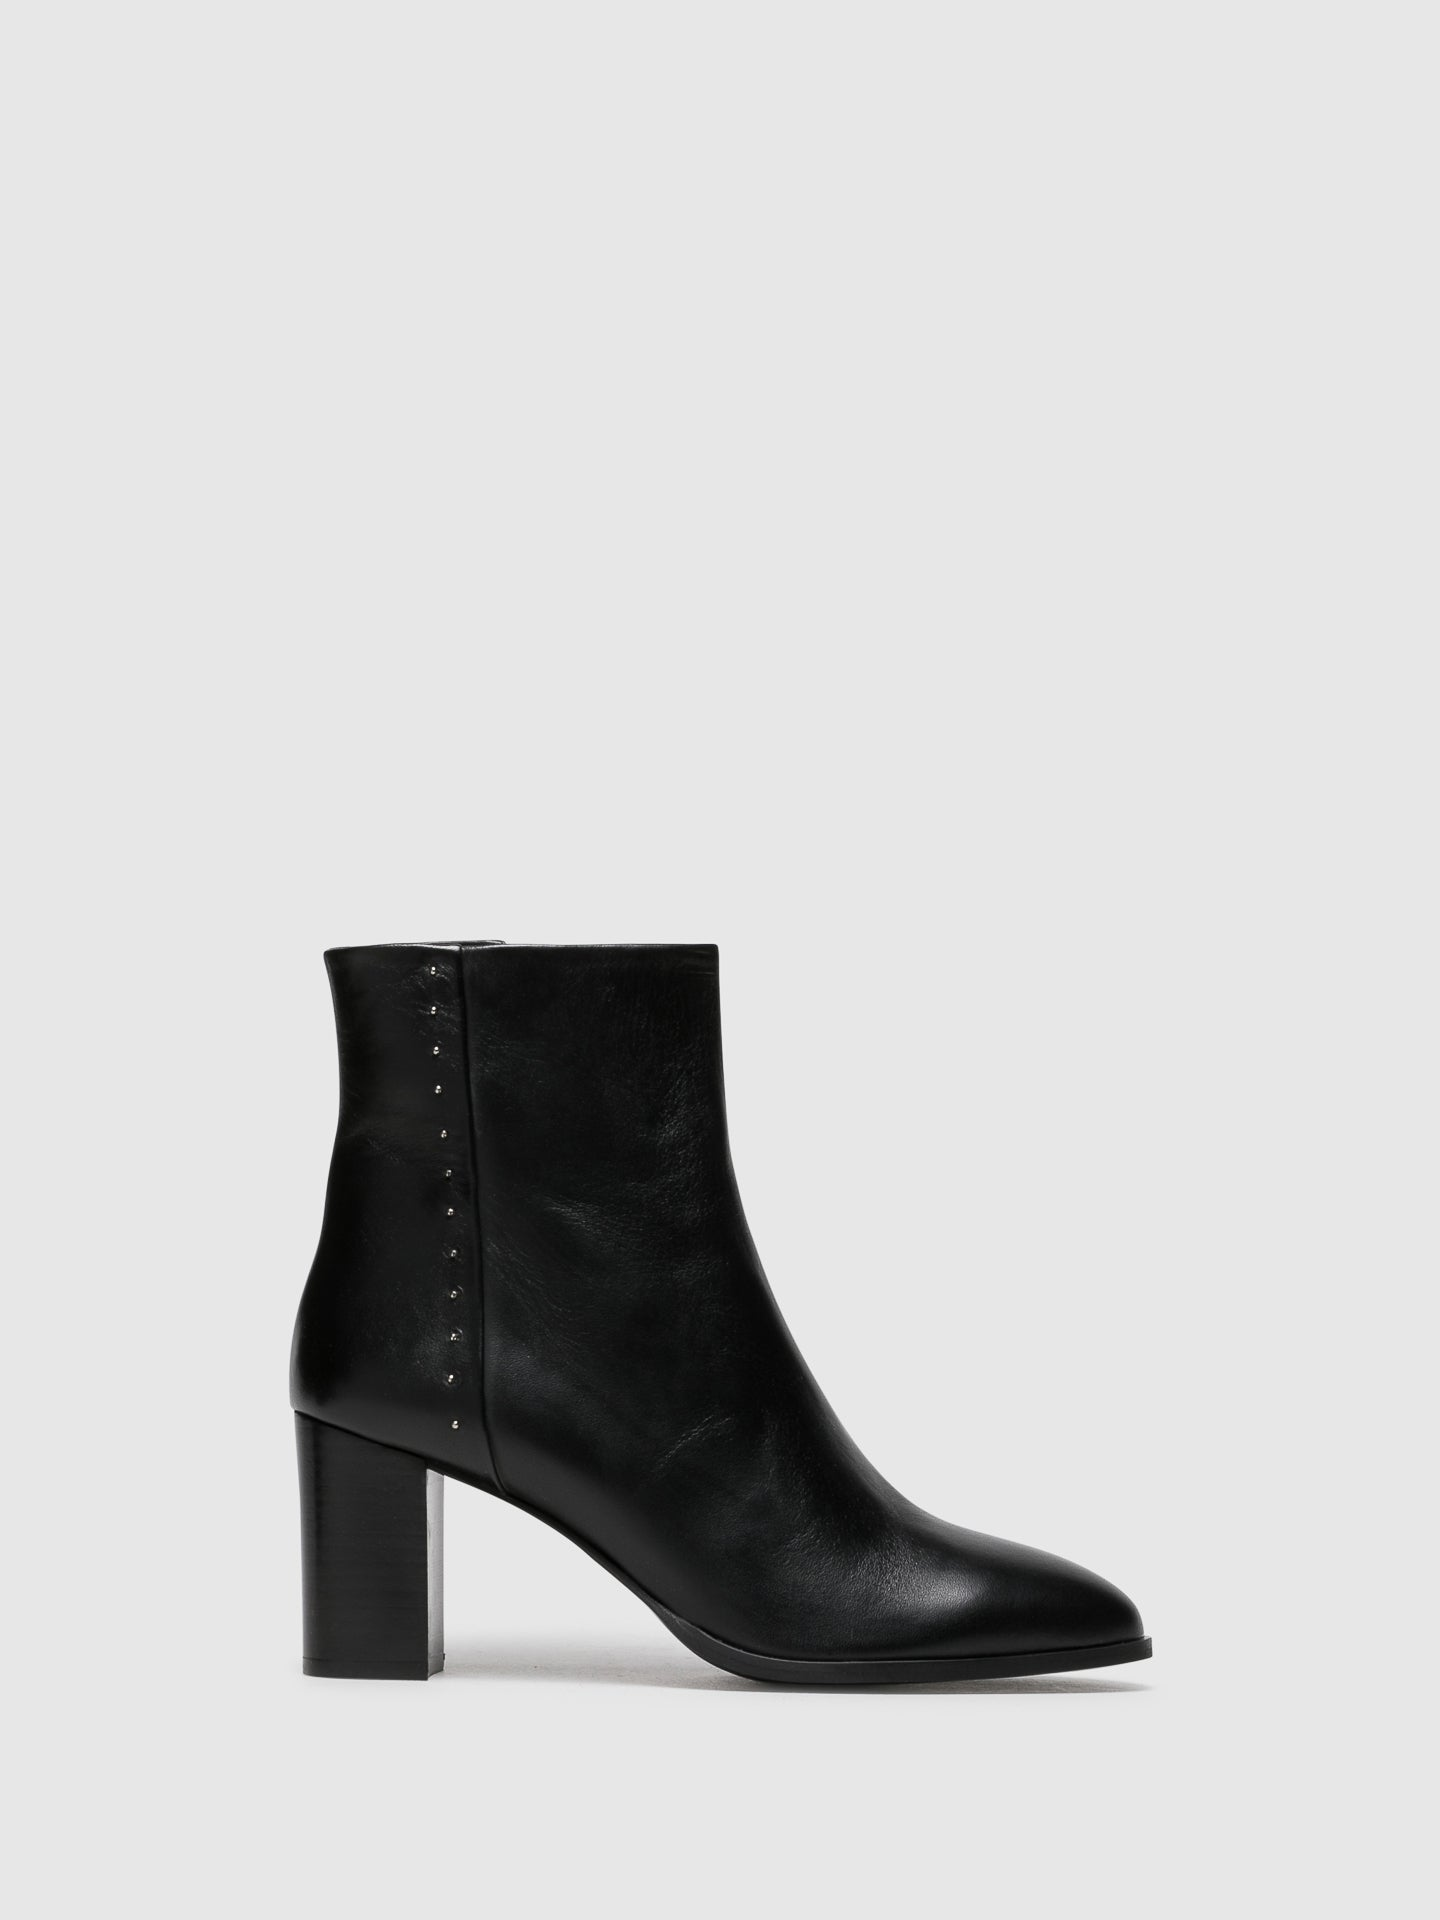 Palazzo VII Black Zip Up Ankle Boots